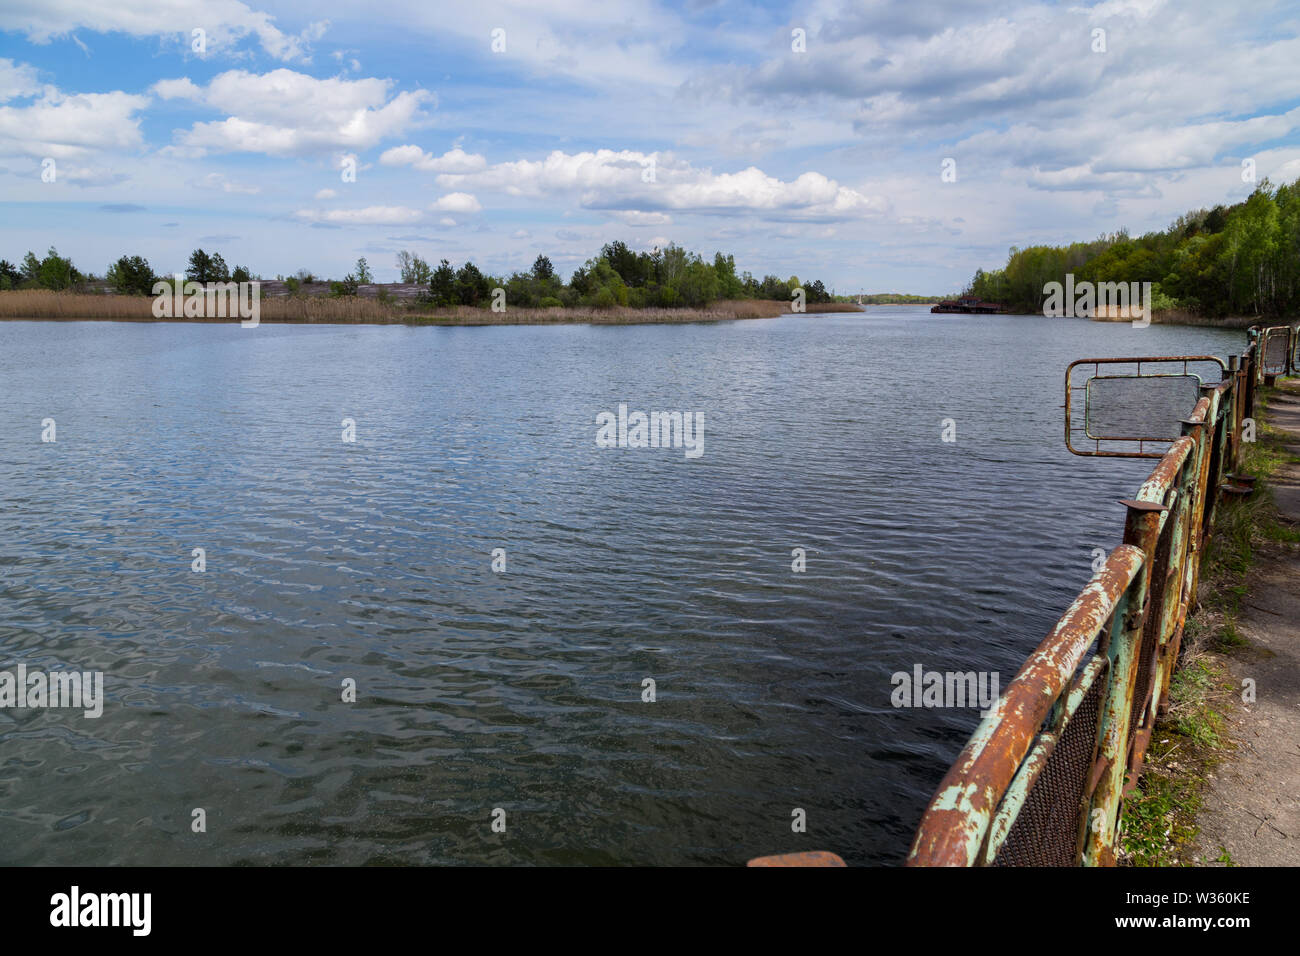 Lake in the town of Prypjat in Ukraine. Lake full of hazardous radioactive waste. after the nuclear disaster of Chernobyl - Stock Image